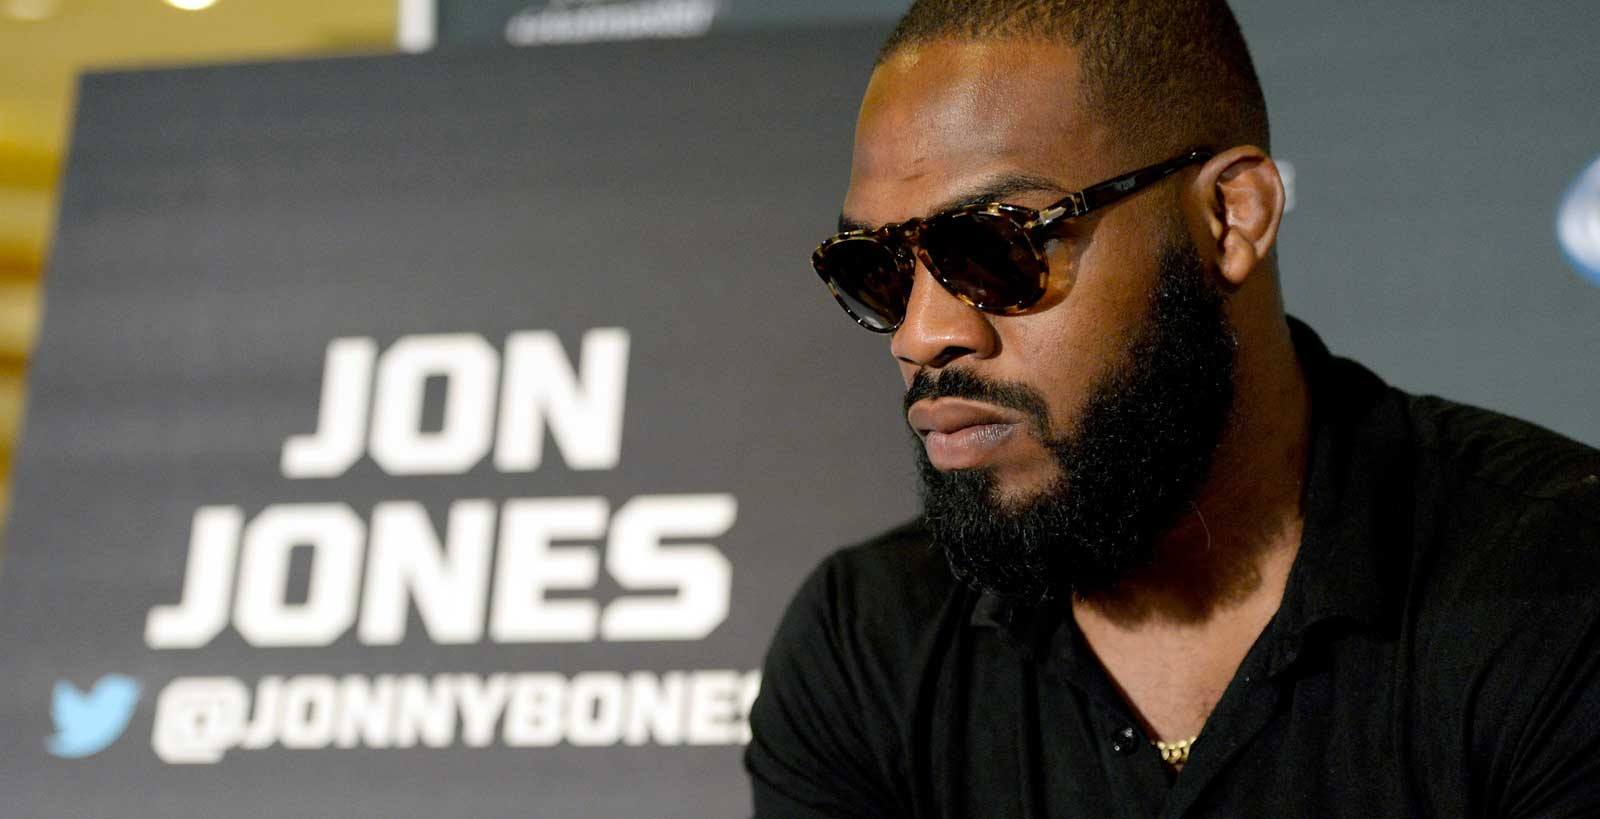 jon jones a des ennuis